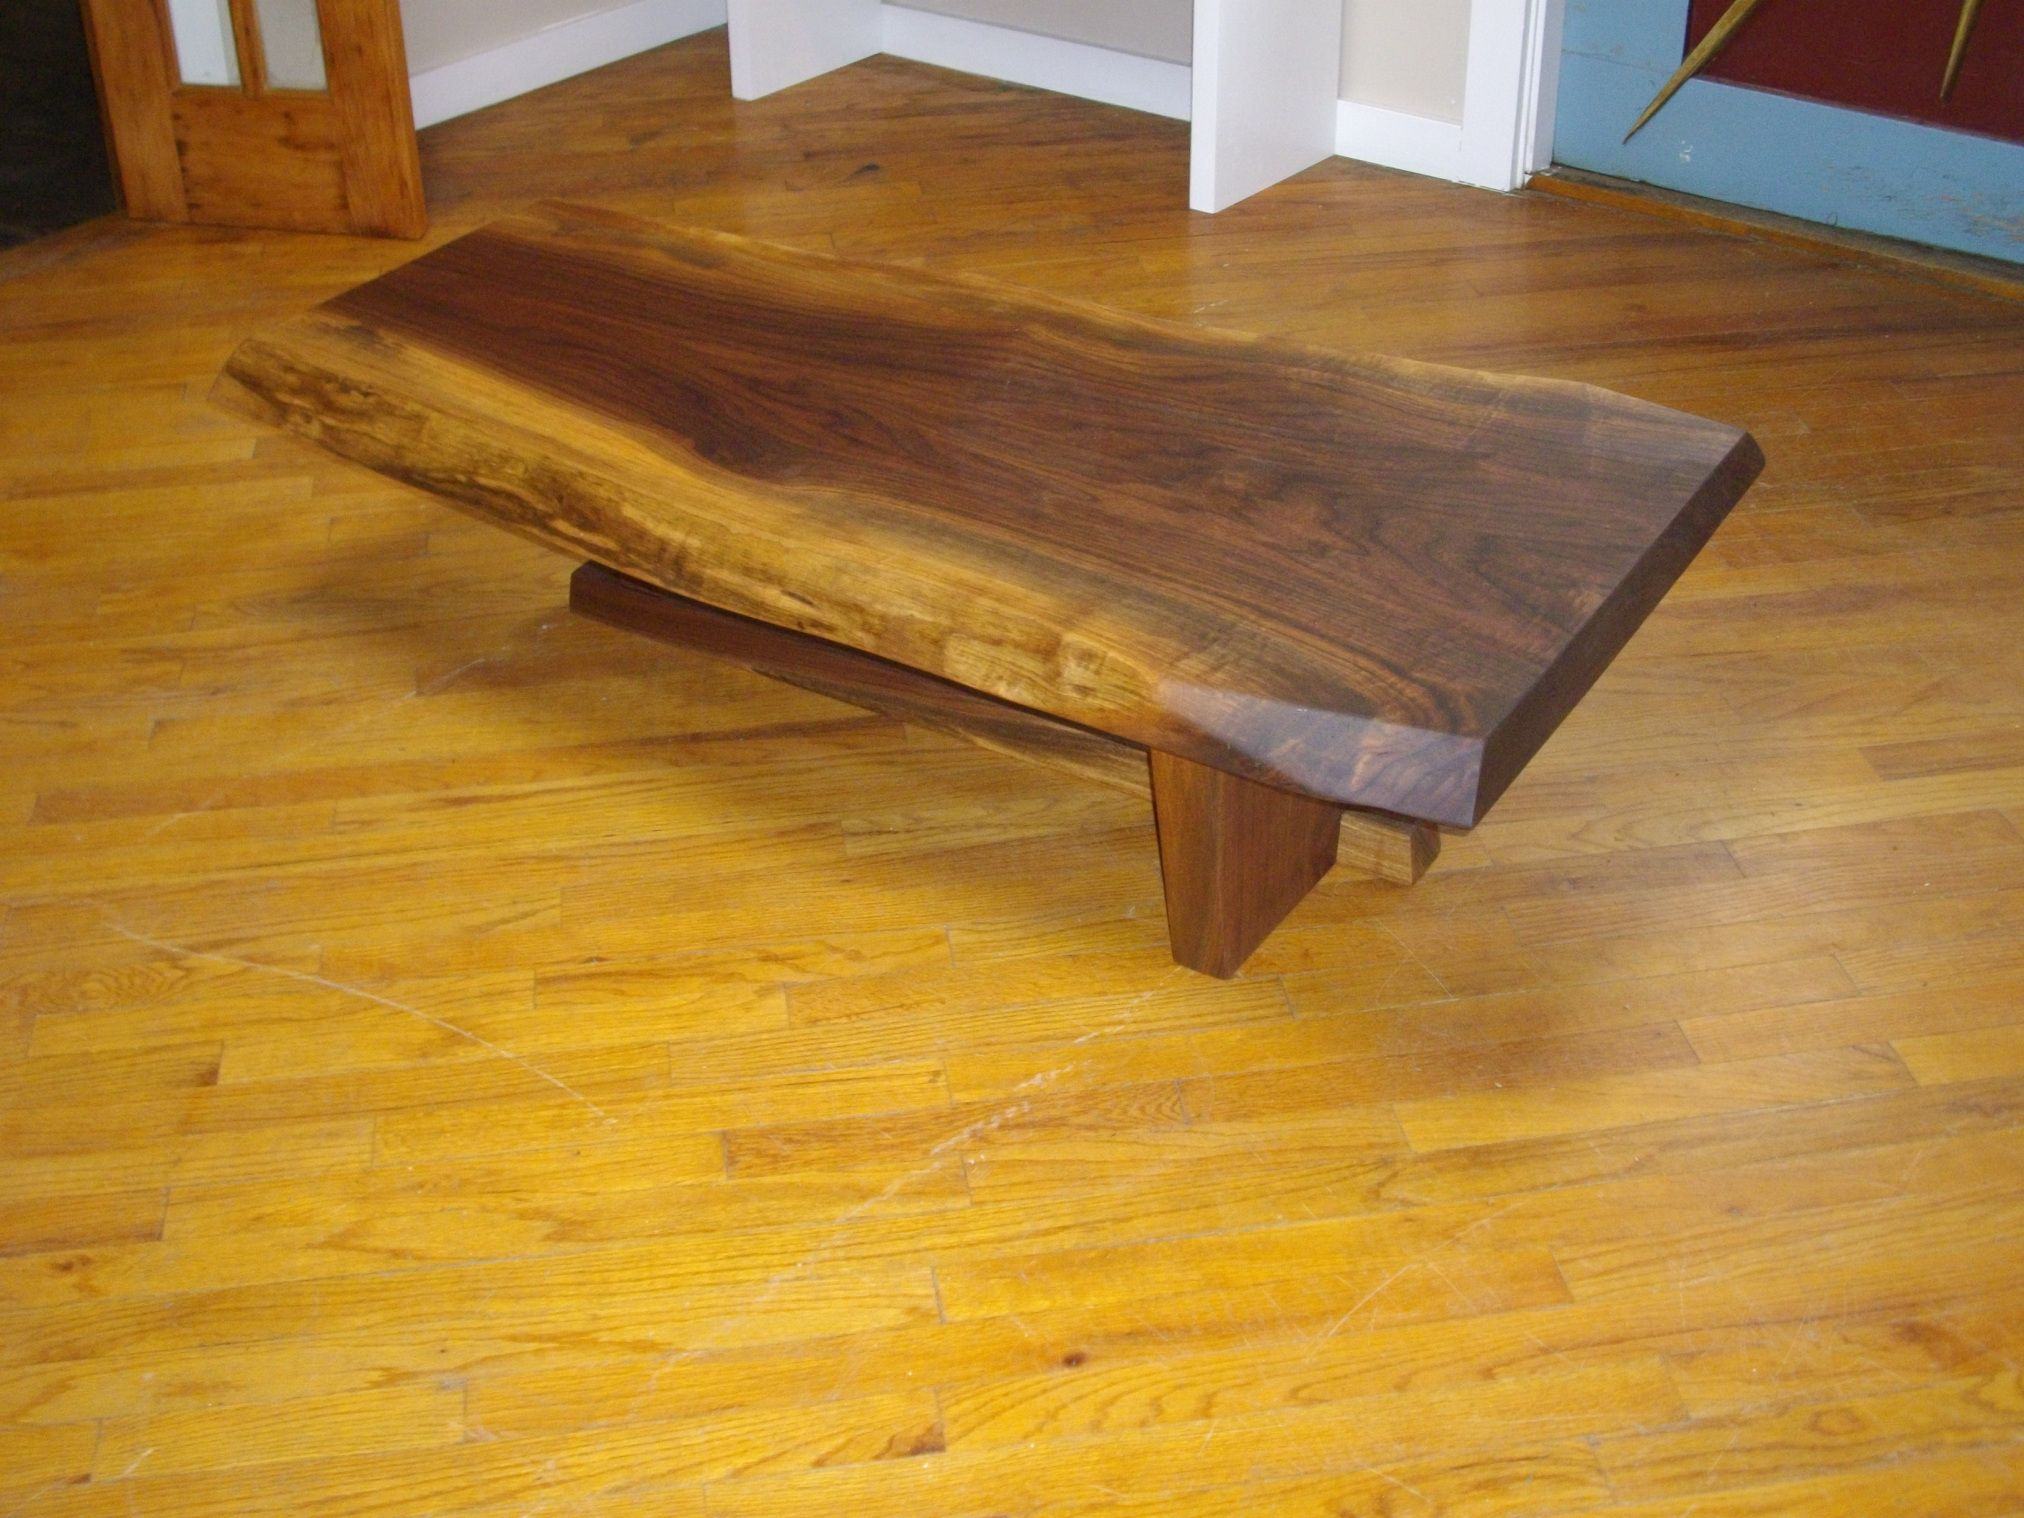 20 solid Wood Coffee Tables for Sale Luxury Home fice